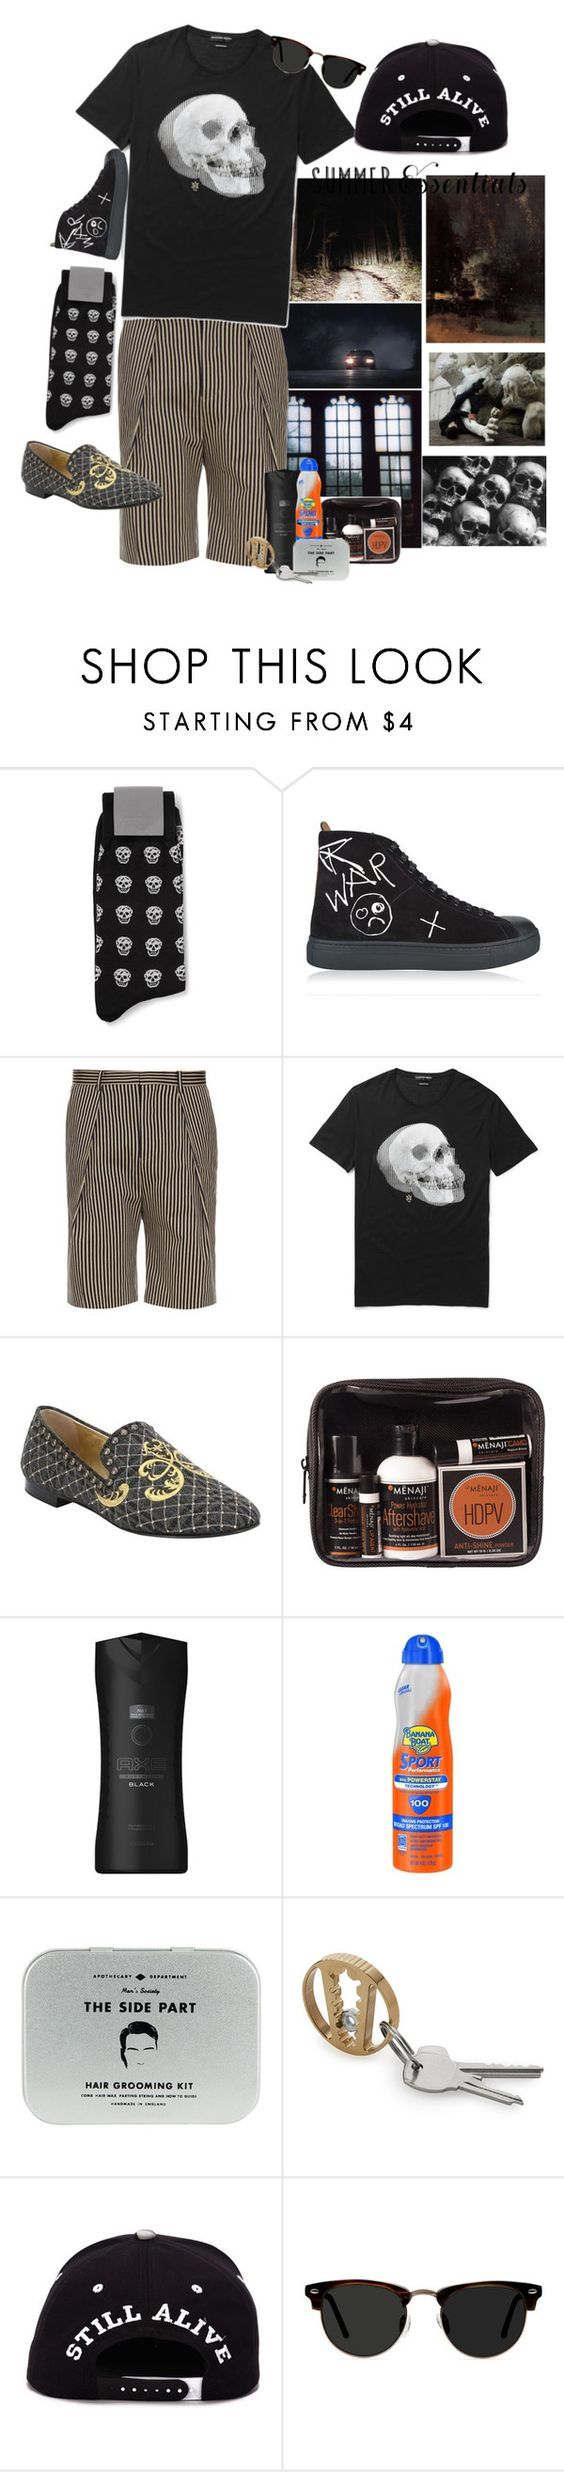 """Black Heart"" by marcusv ❤ liked on Polyvore featuring Alexander McQueen, Vivienne Westwood Man, TOMORROWLAND, Giuseppe Zanotti, MÃ«naji, Axe, Banana Boat, Men's Society, Ace and men's fashion"